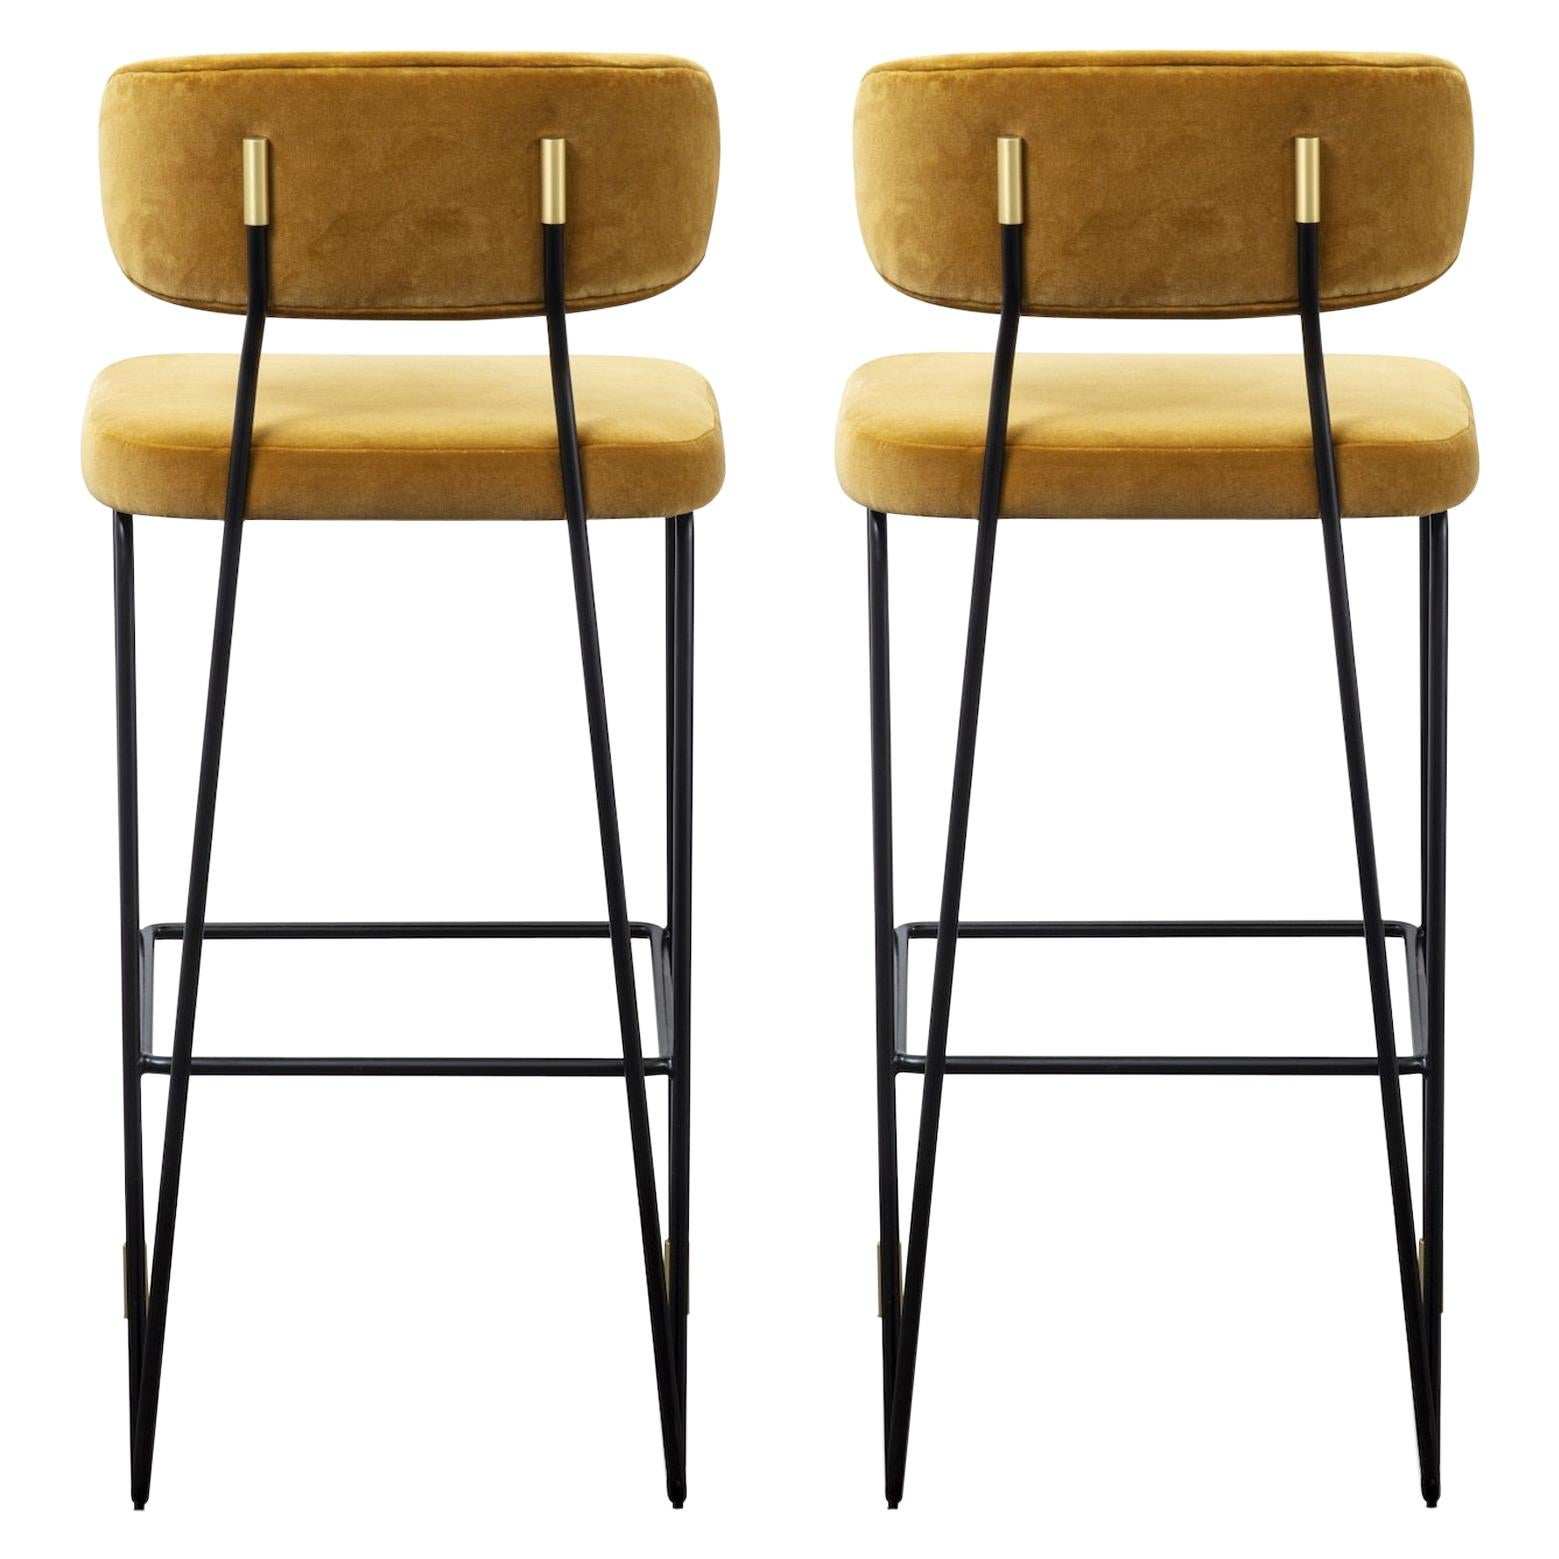 Hand Built Stool in Black Metal Frame and Brass Detailing